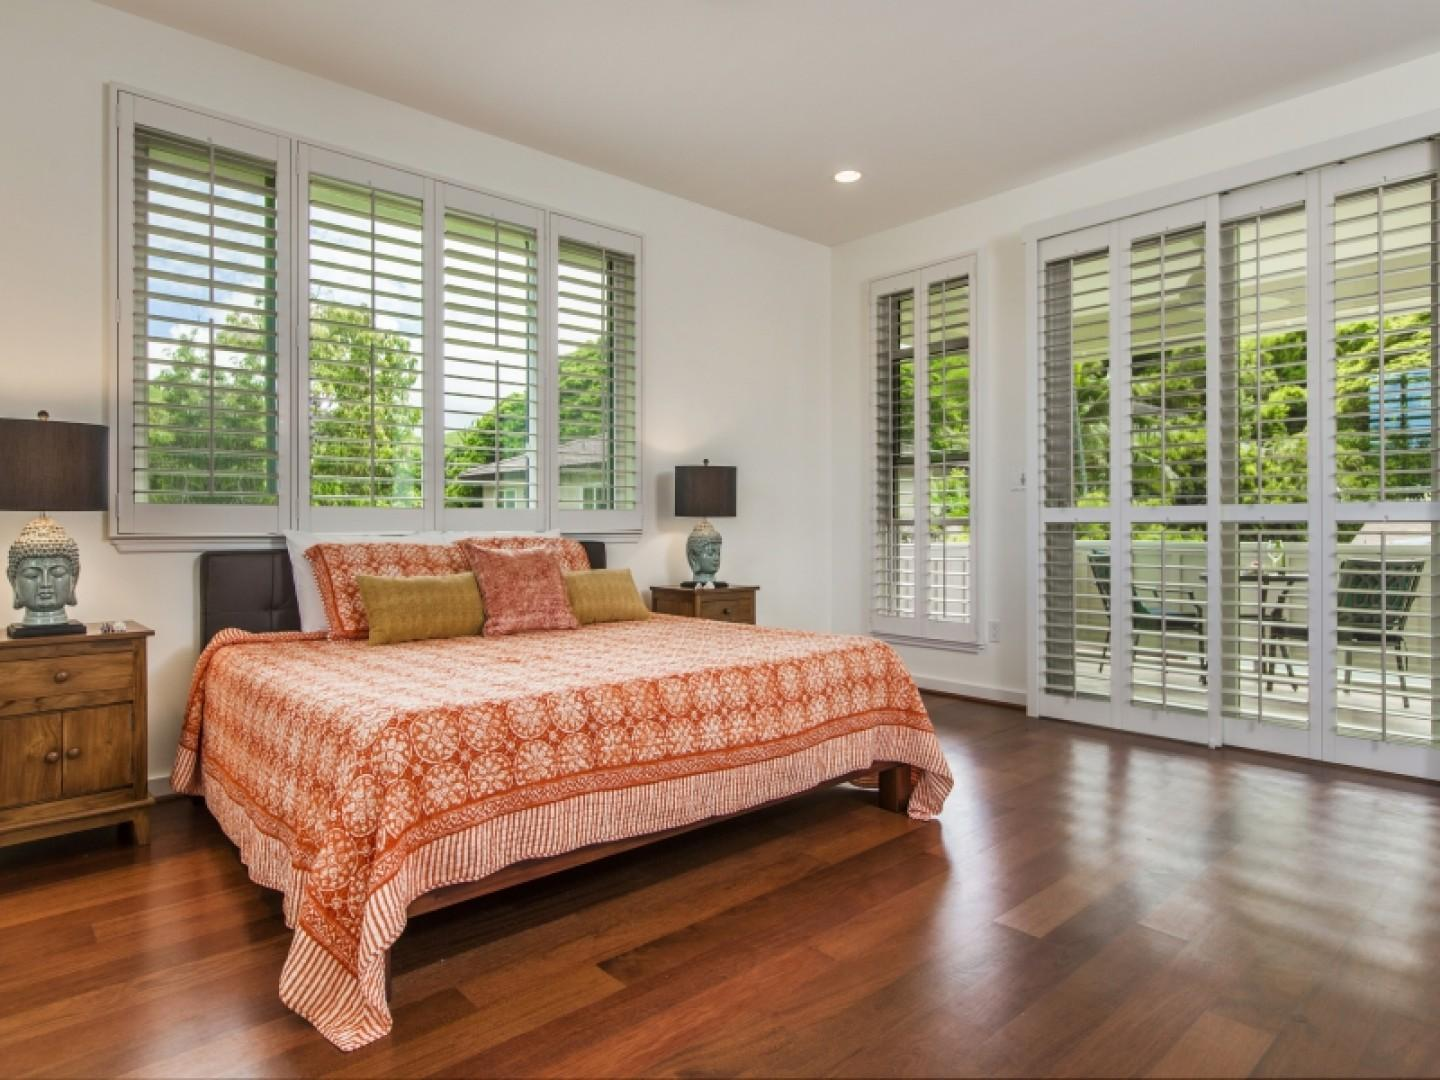 Doors lead to a covered second-floor lanai and offer privacy for the master bedroom.